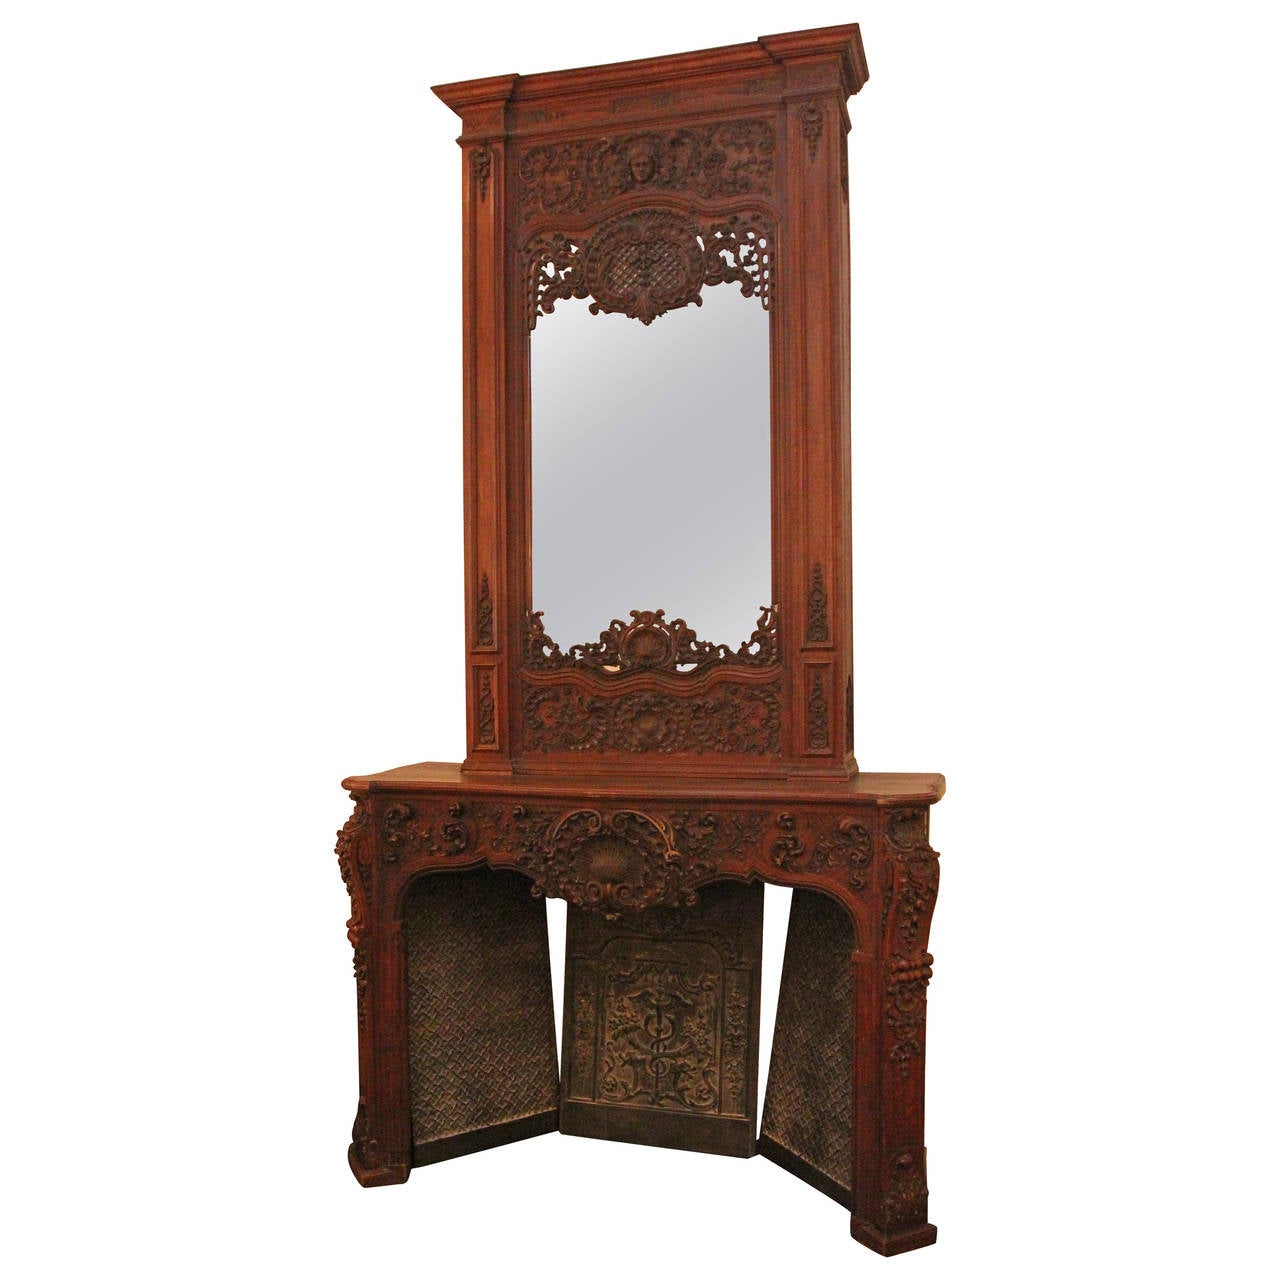 1878 large neoclassical carved walnut mantel and